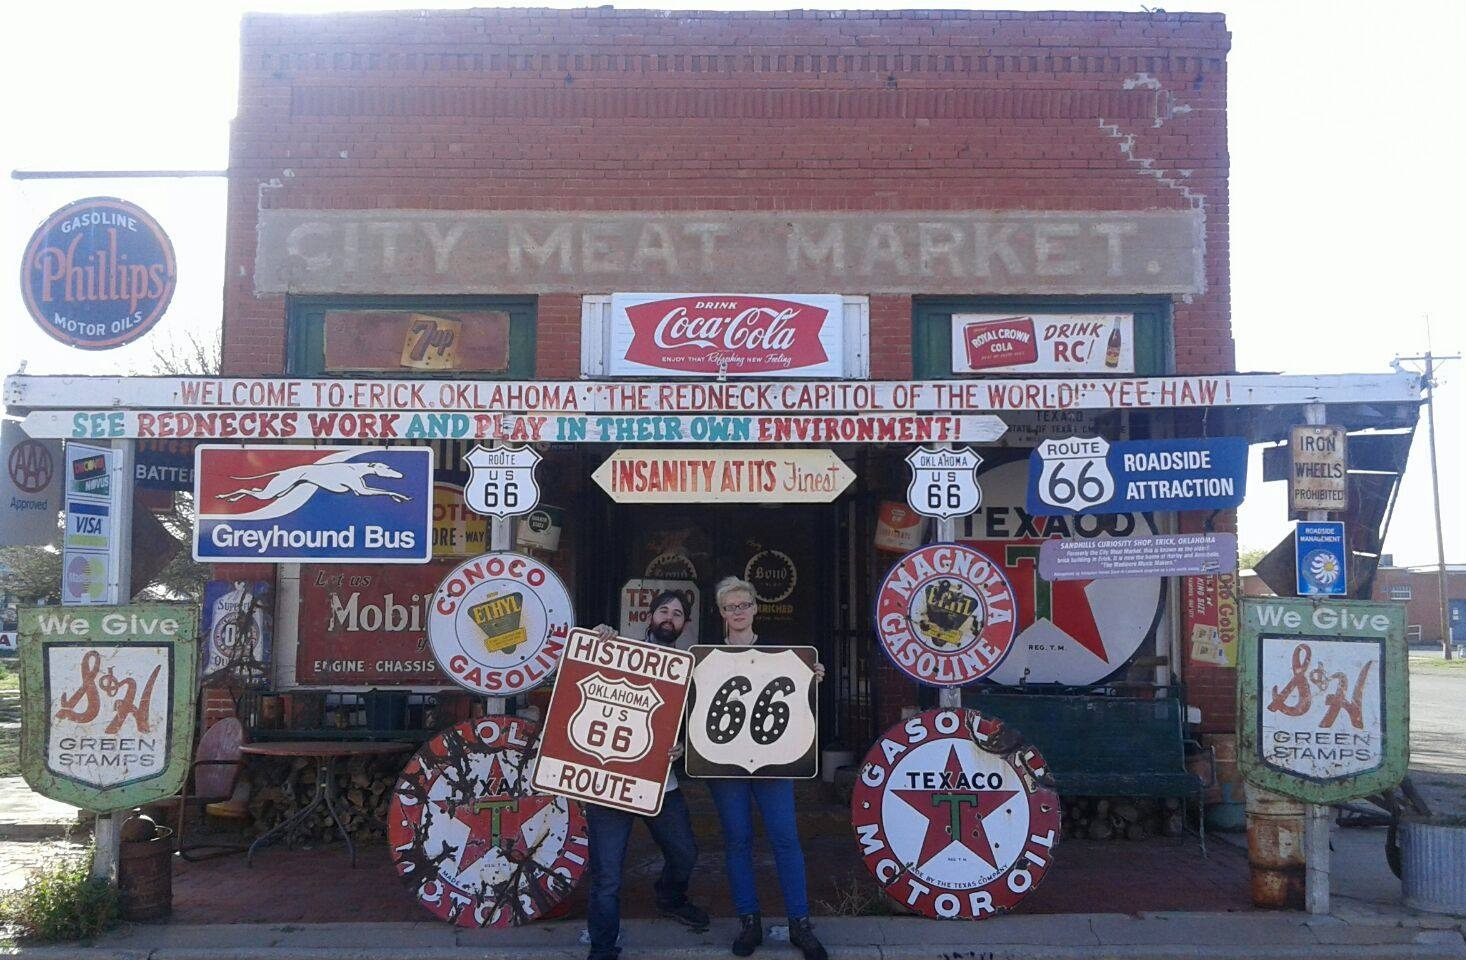 city-meat-market-erick-OK